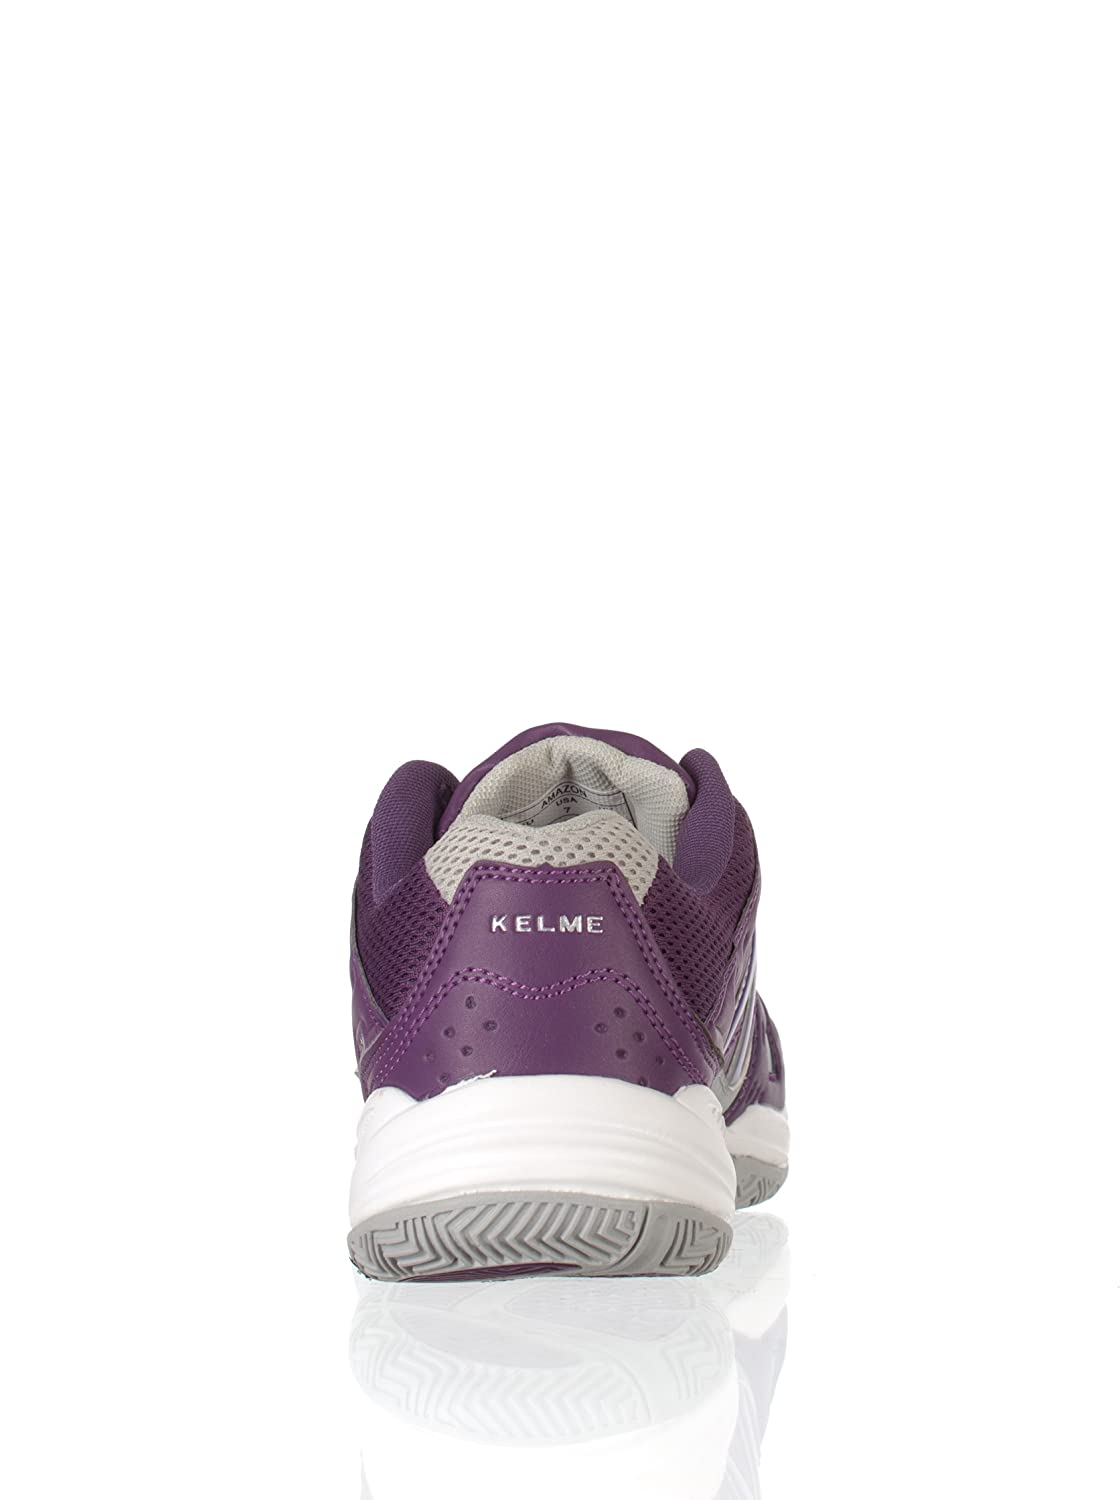 Kelme Zapatillas Casual Amazon Padel Morado 40: Amazon.es: Zapatos ...